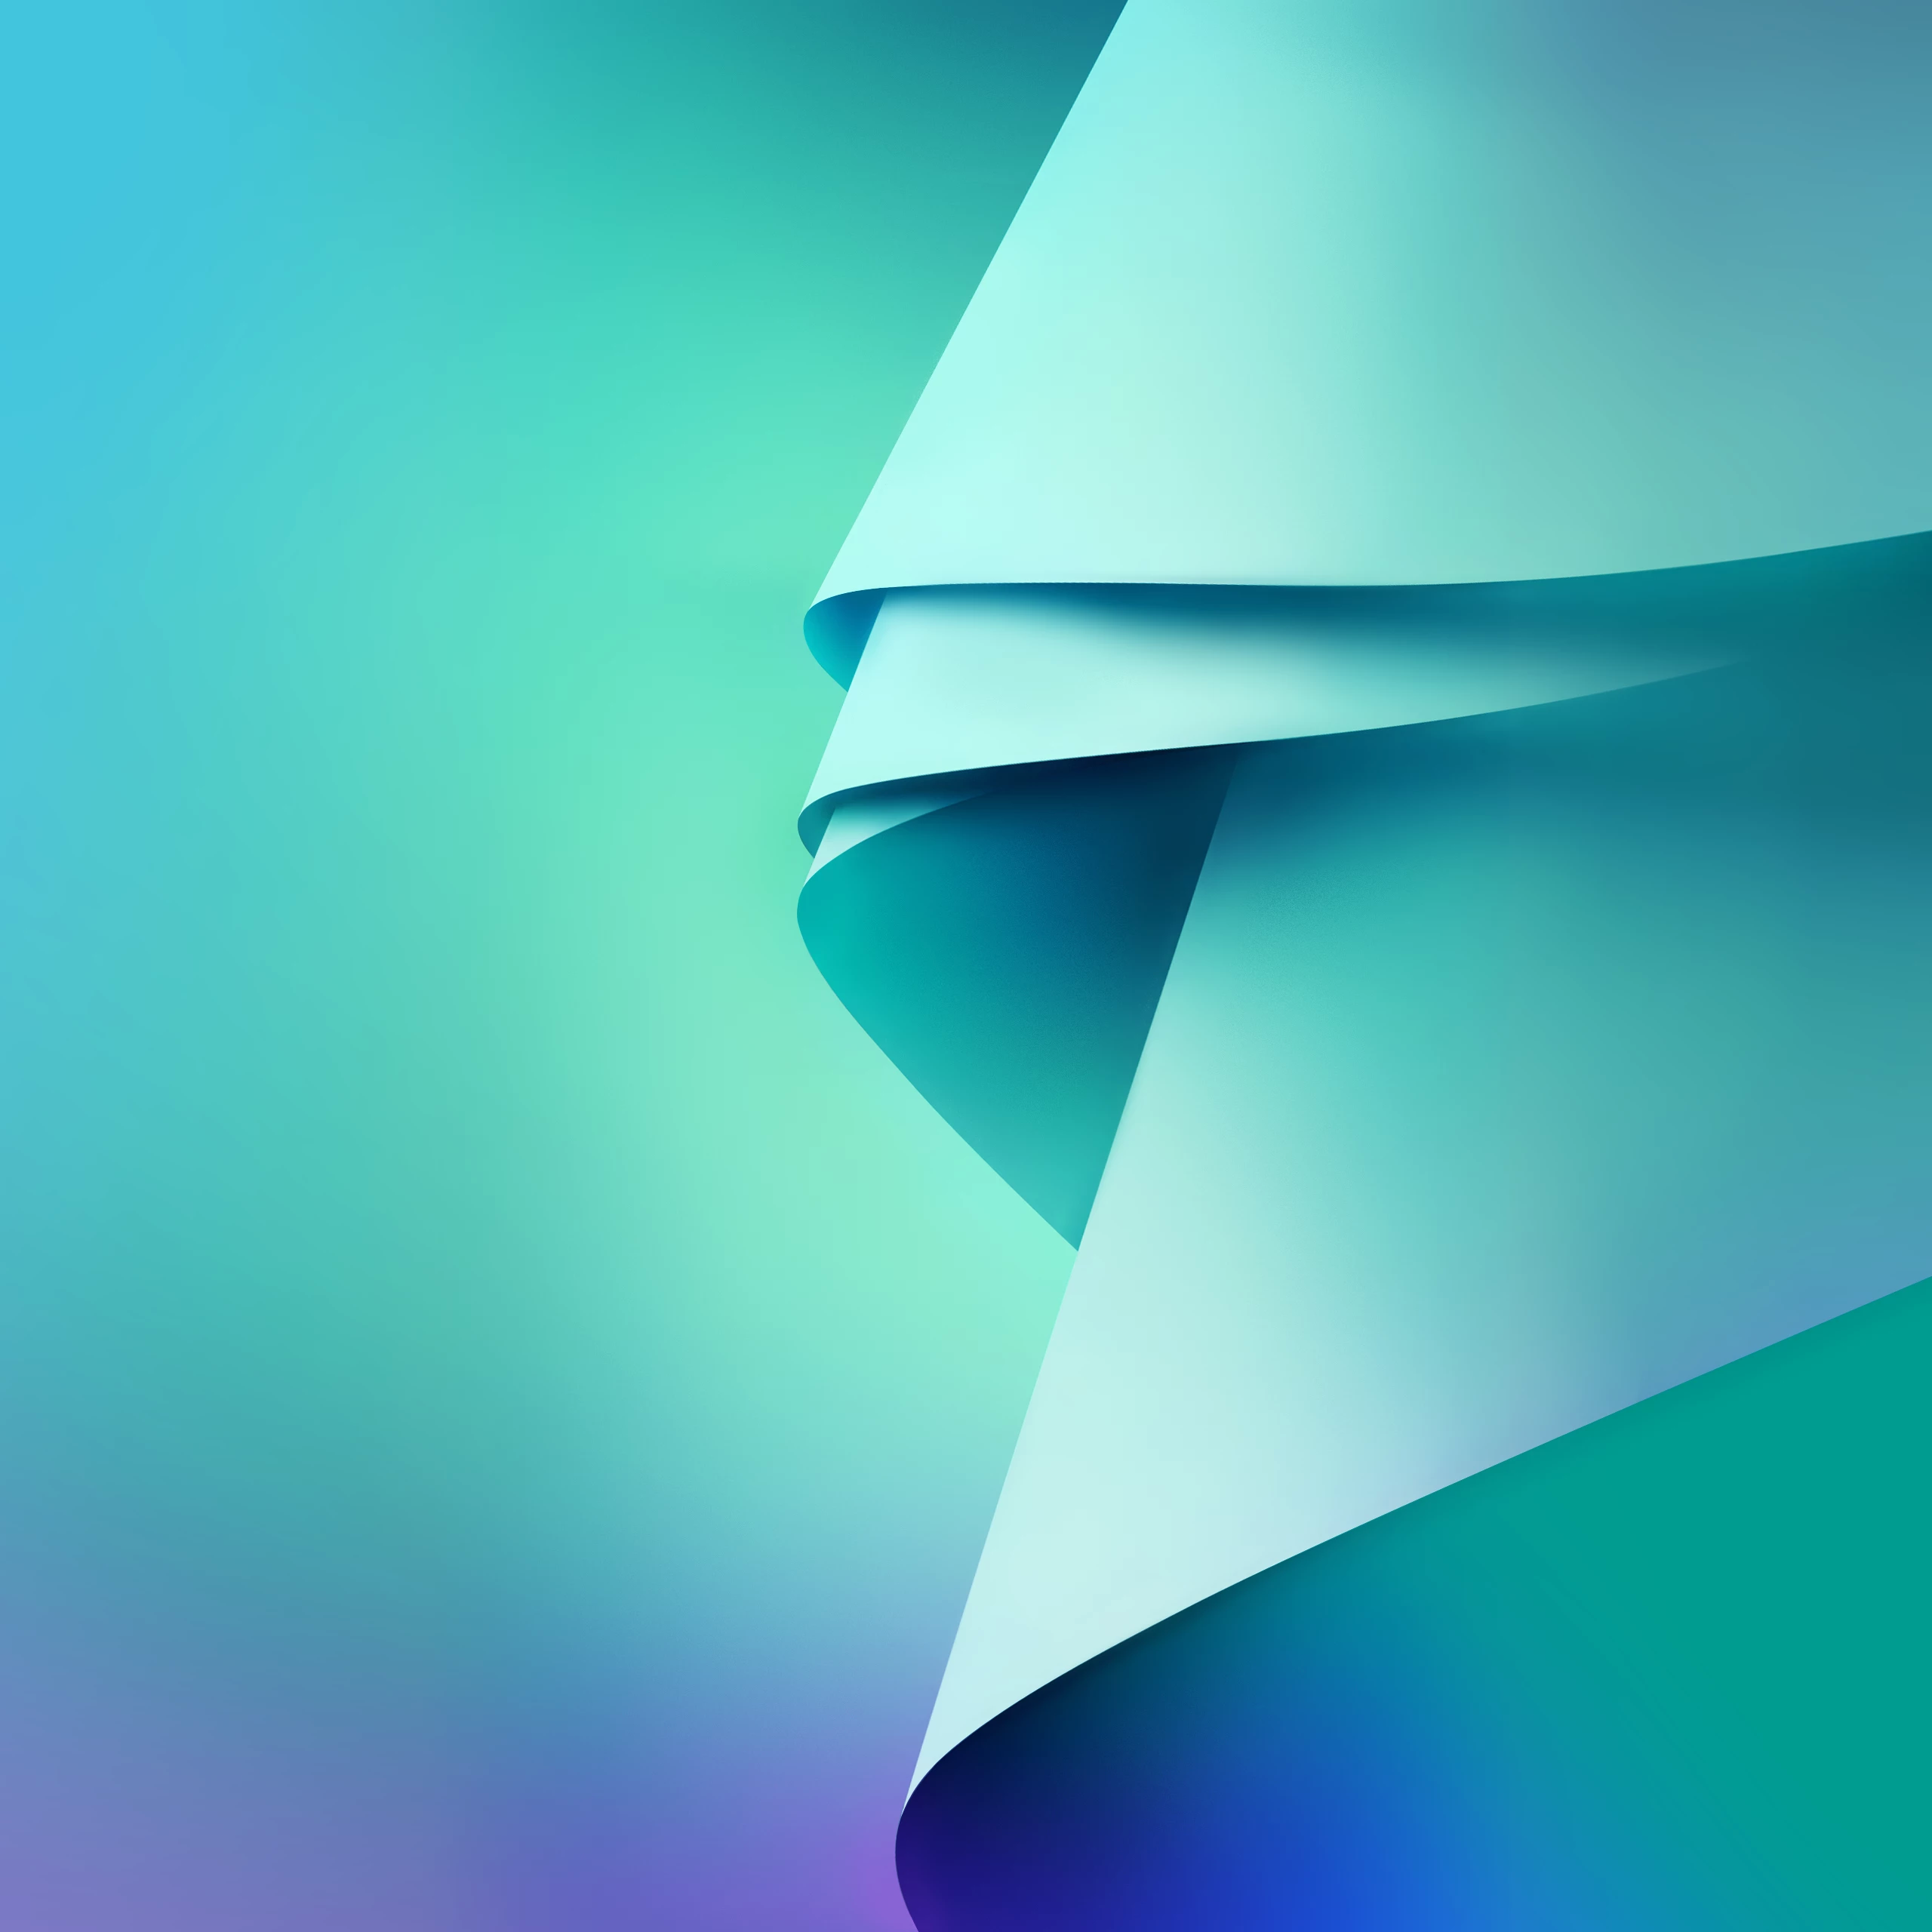 Galaxy Note 5 Wallpapers 04